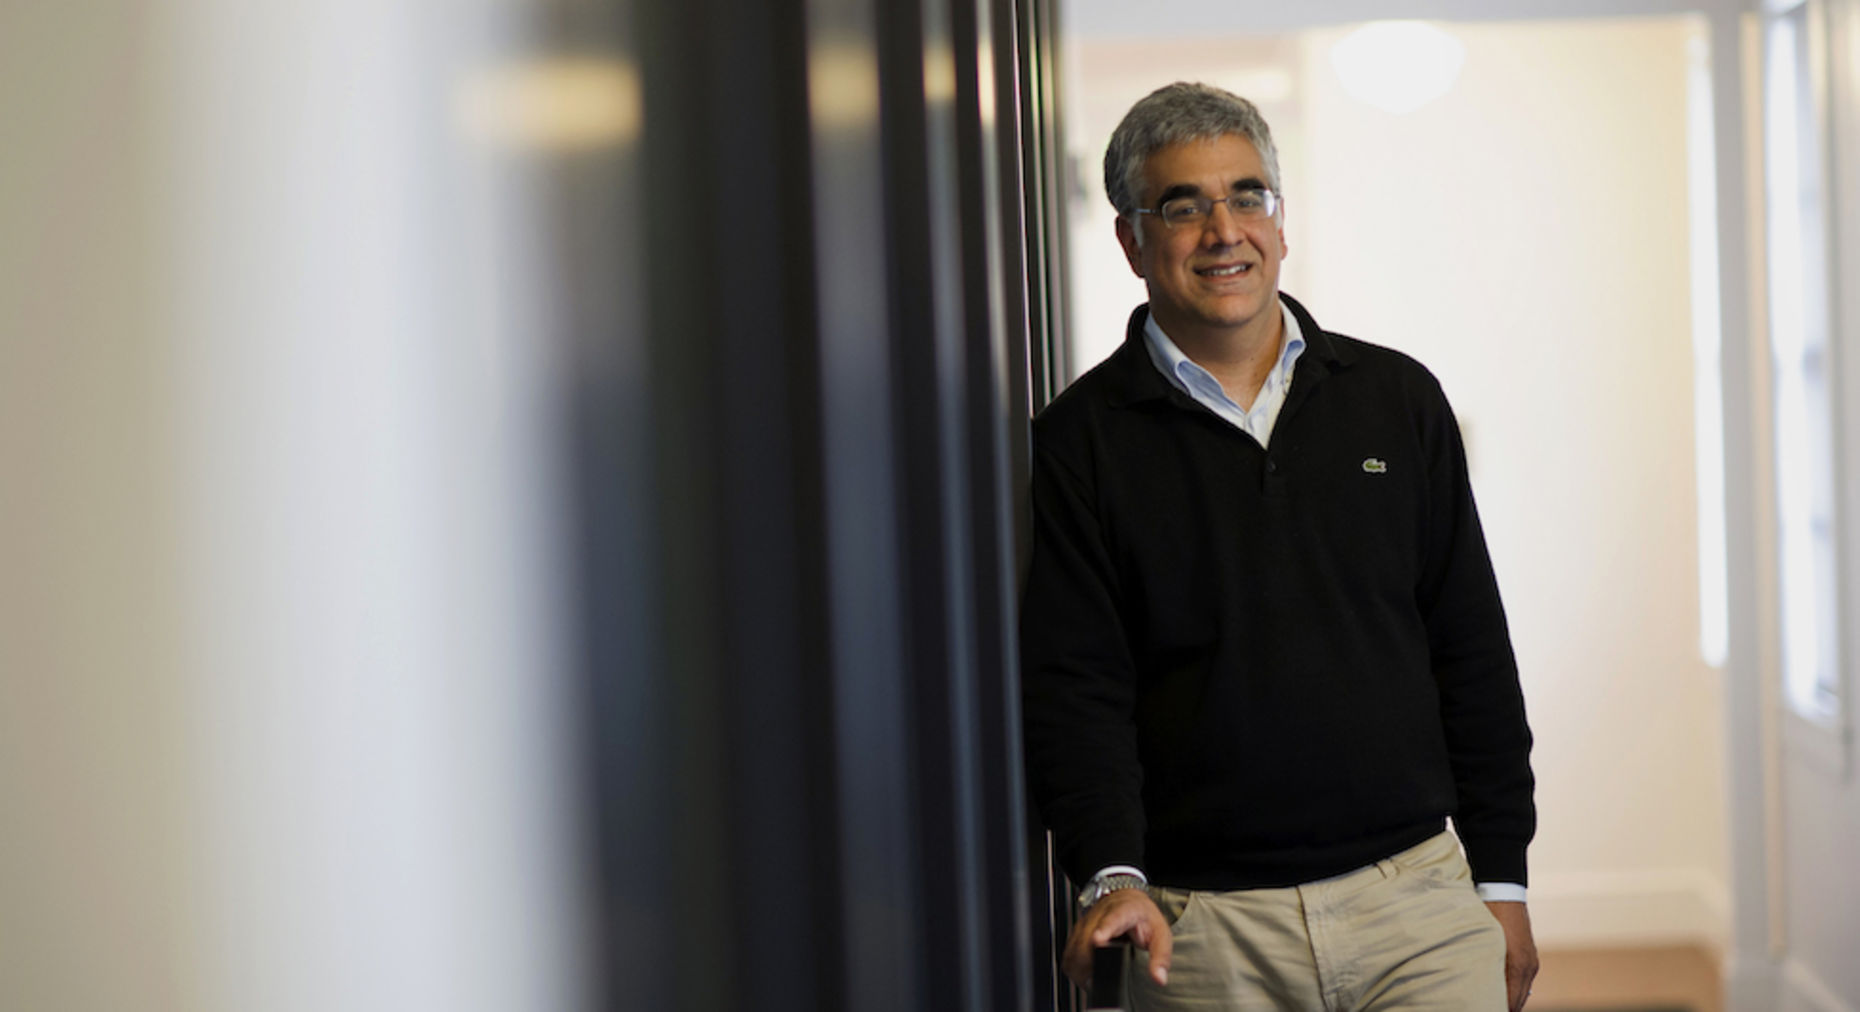 Workday CEO Aneel Bhusri. Photo by Bloomberg.